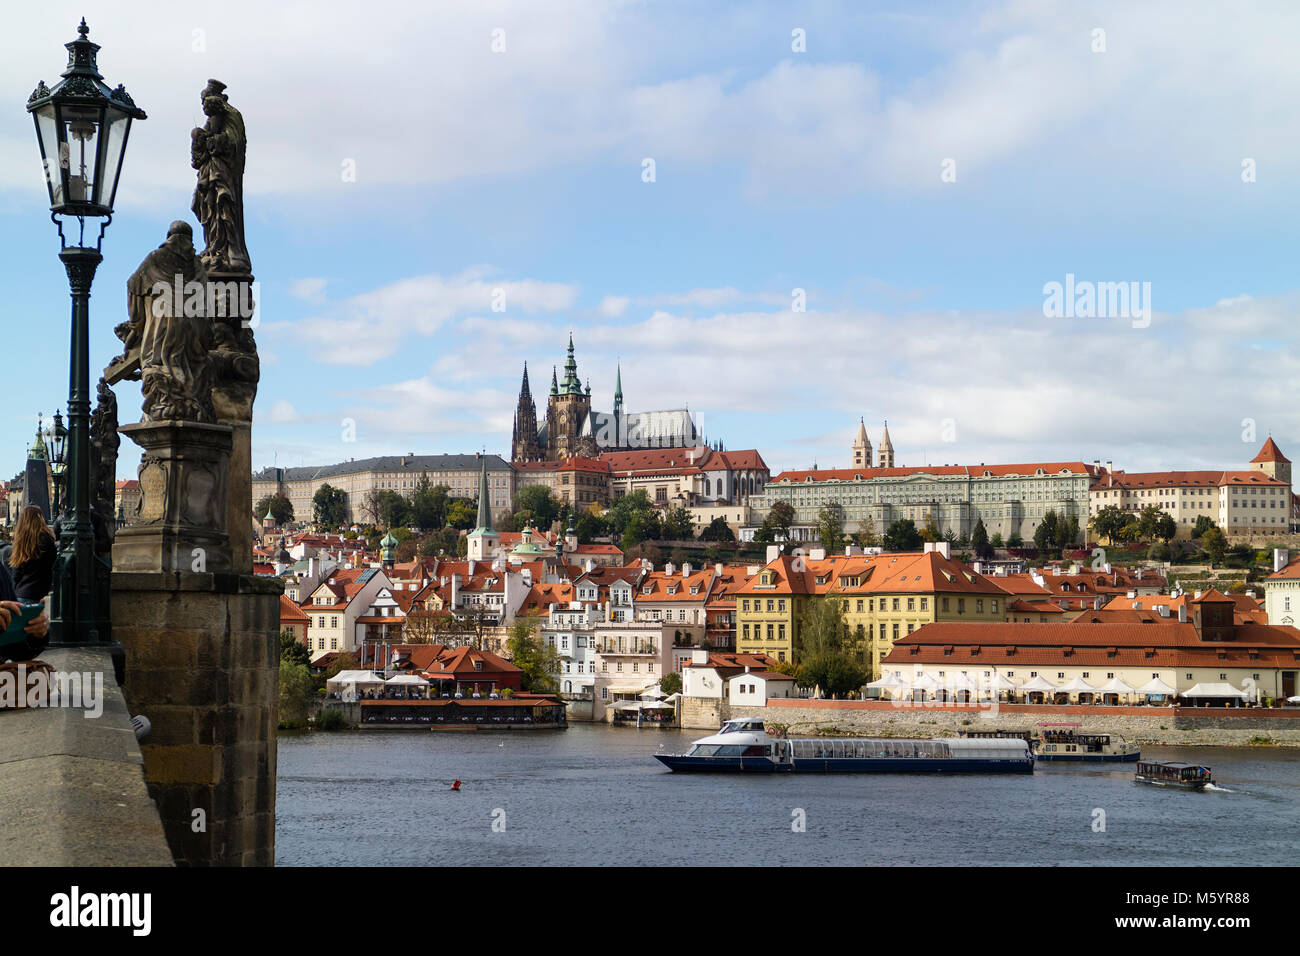 Prague; Czech Republic - October, 6, 2017: Prague castle seen from the Charles Bridge with the river Moldau and - Stock Image